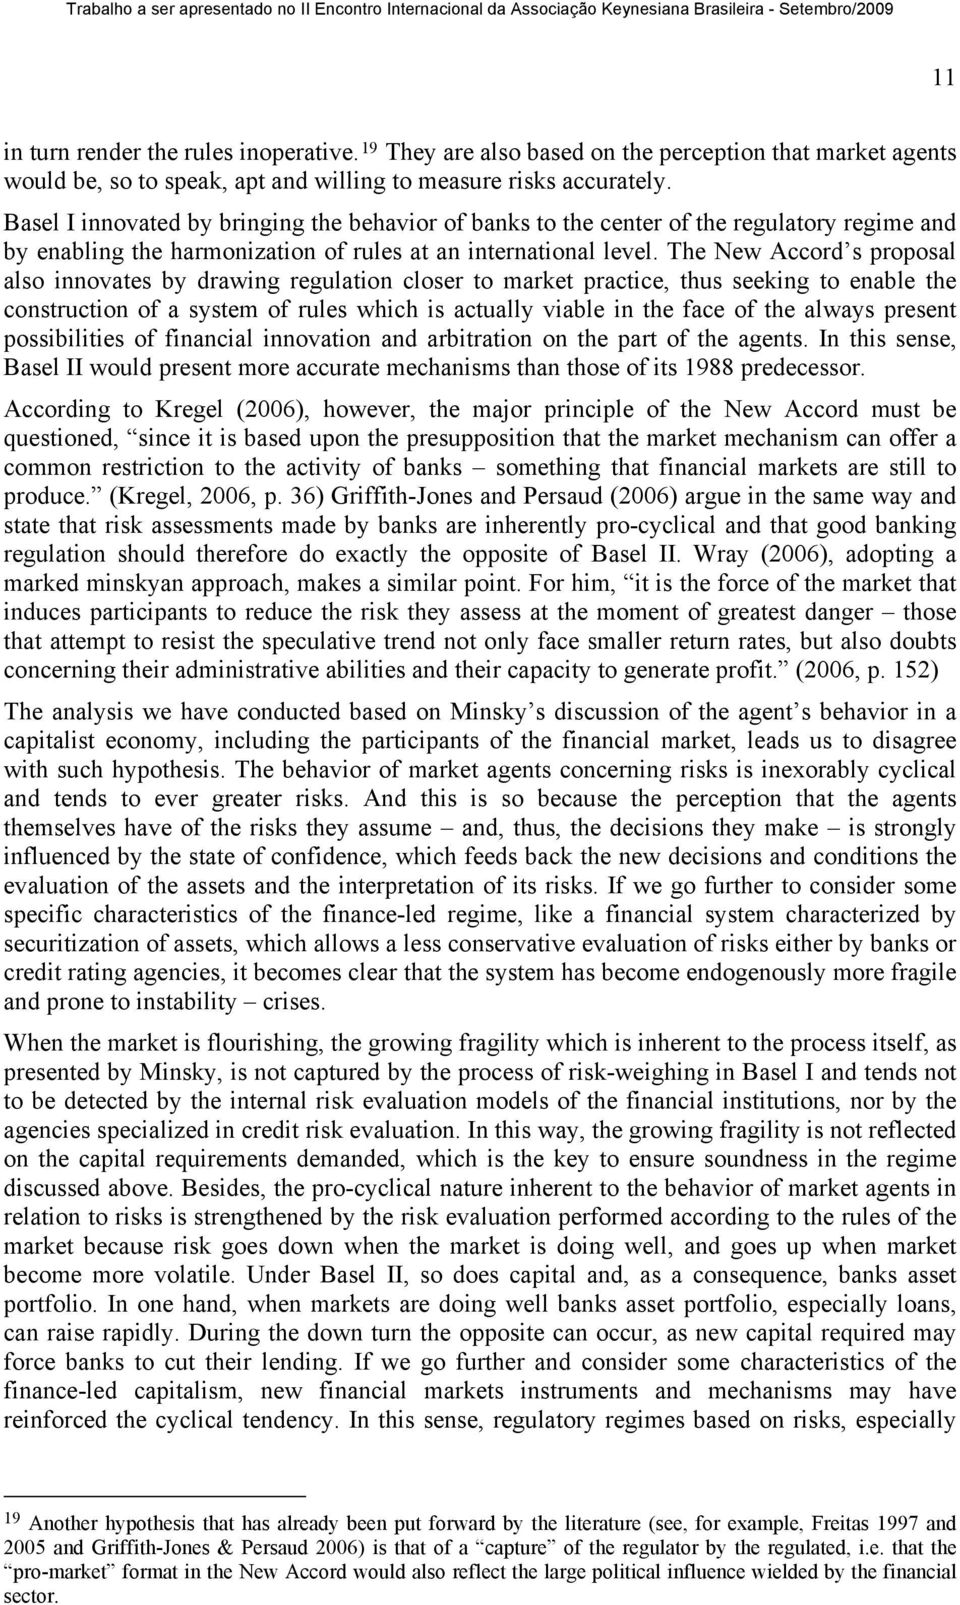 The New Accord s proposal also innovates by drawing regulation closer to market practice, thus seeking to enable the construction of a system of rules which is actually viable in the face of the